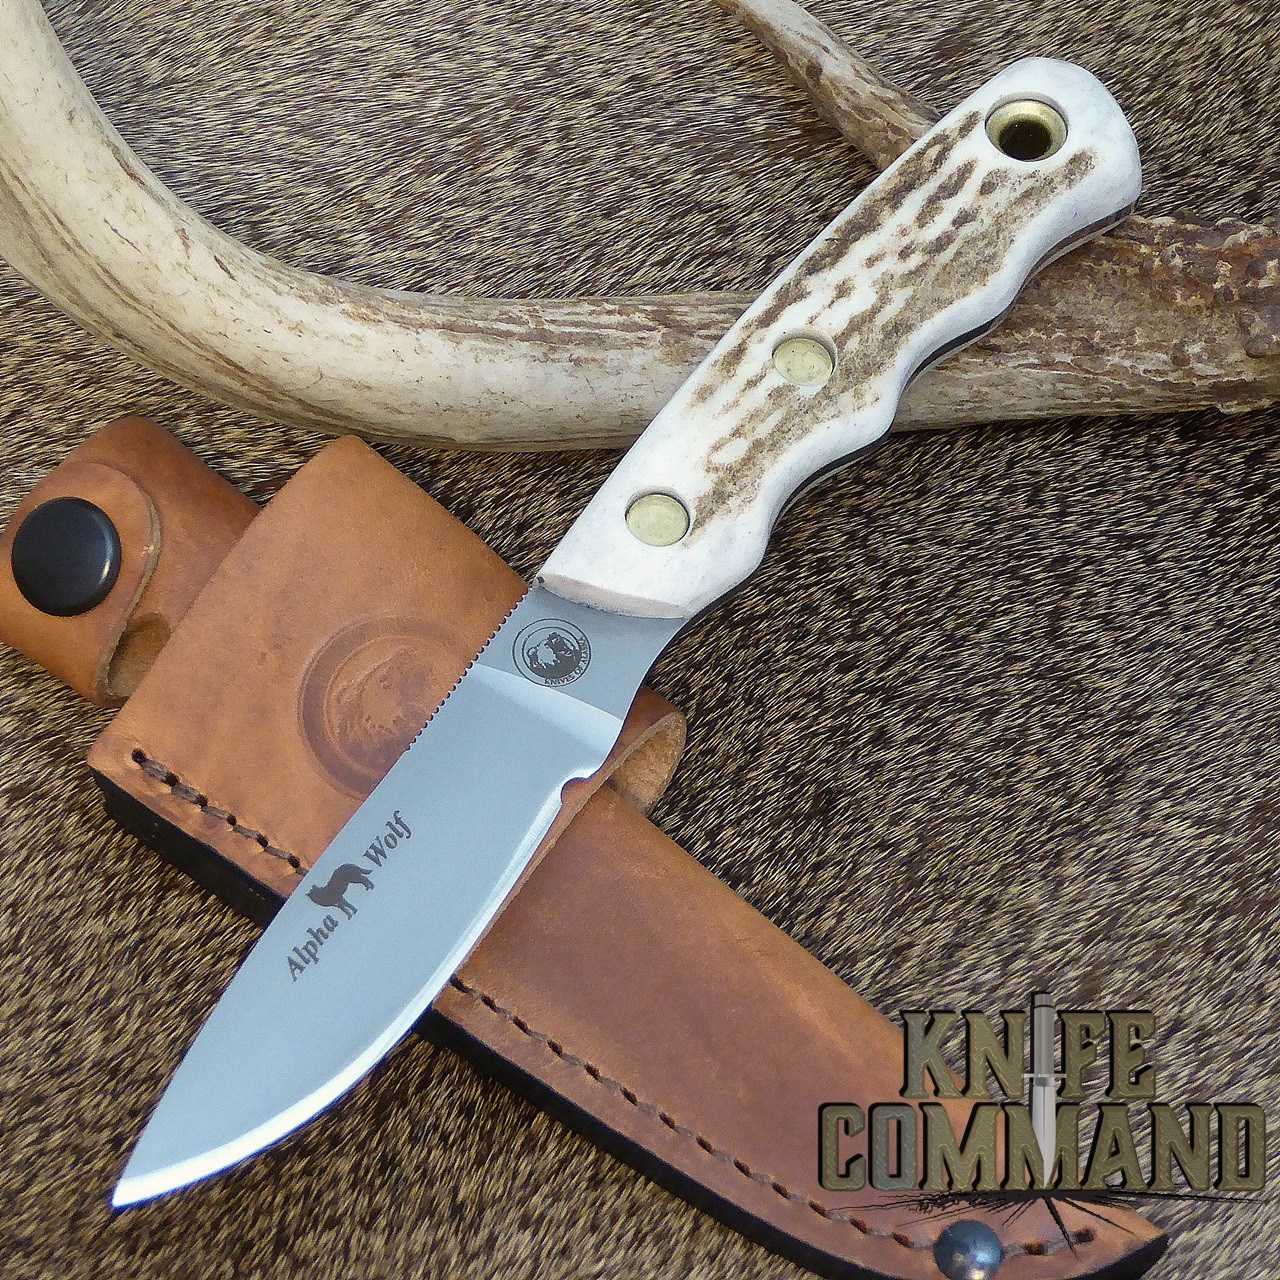 D2 blade and Stag handle.